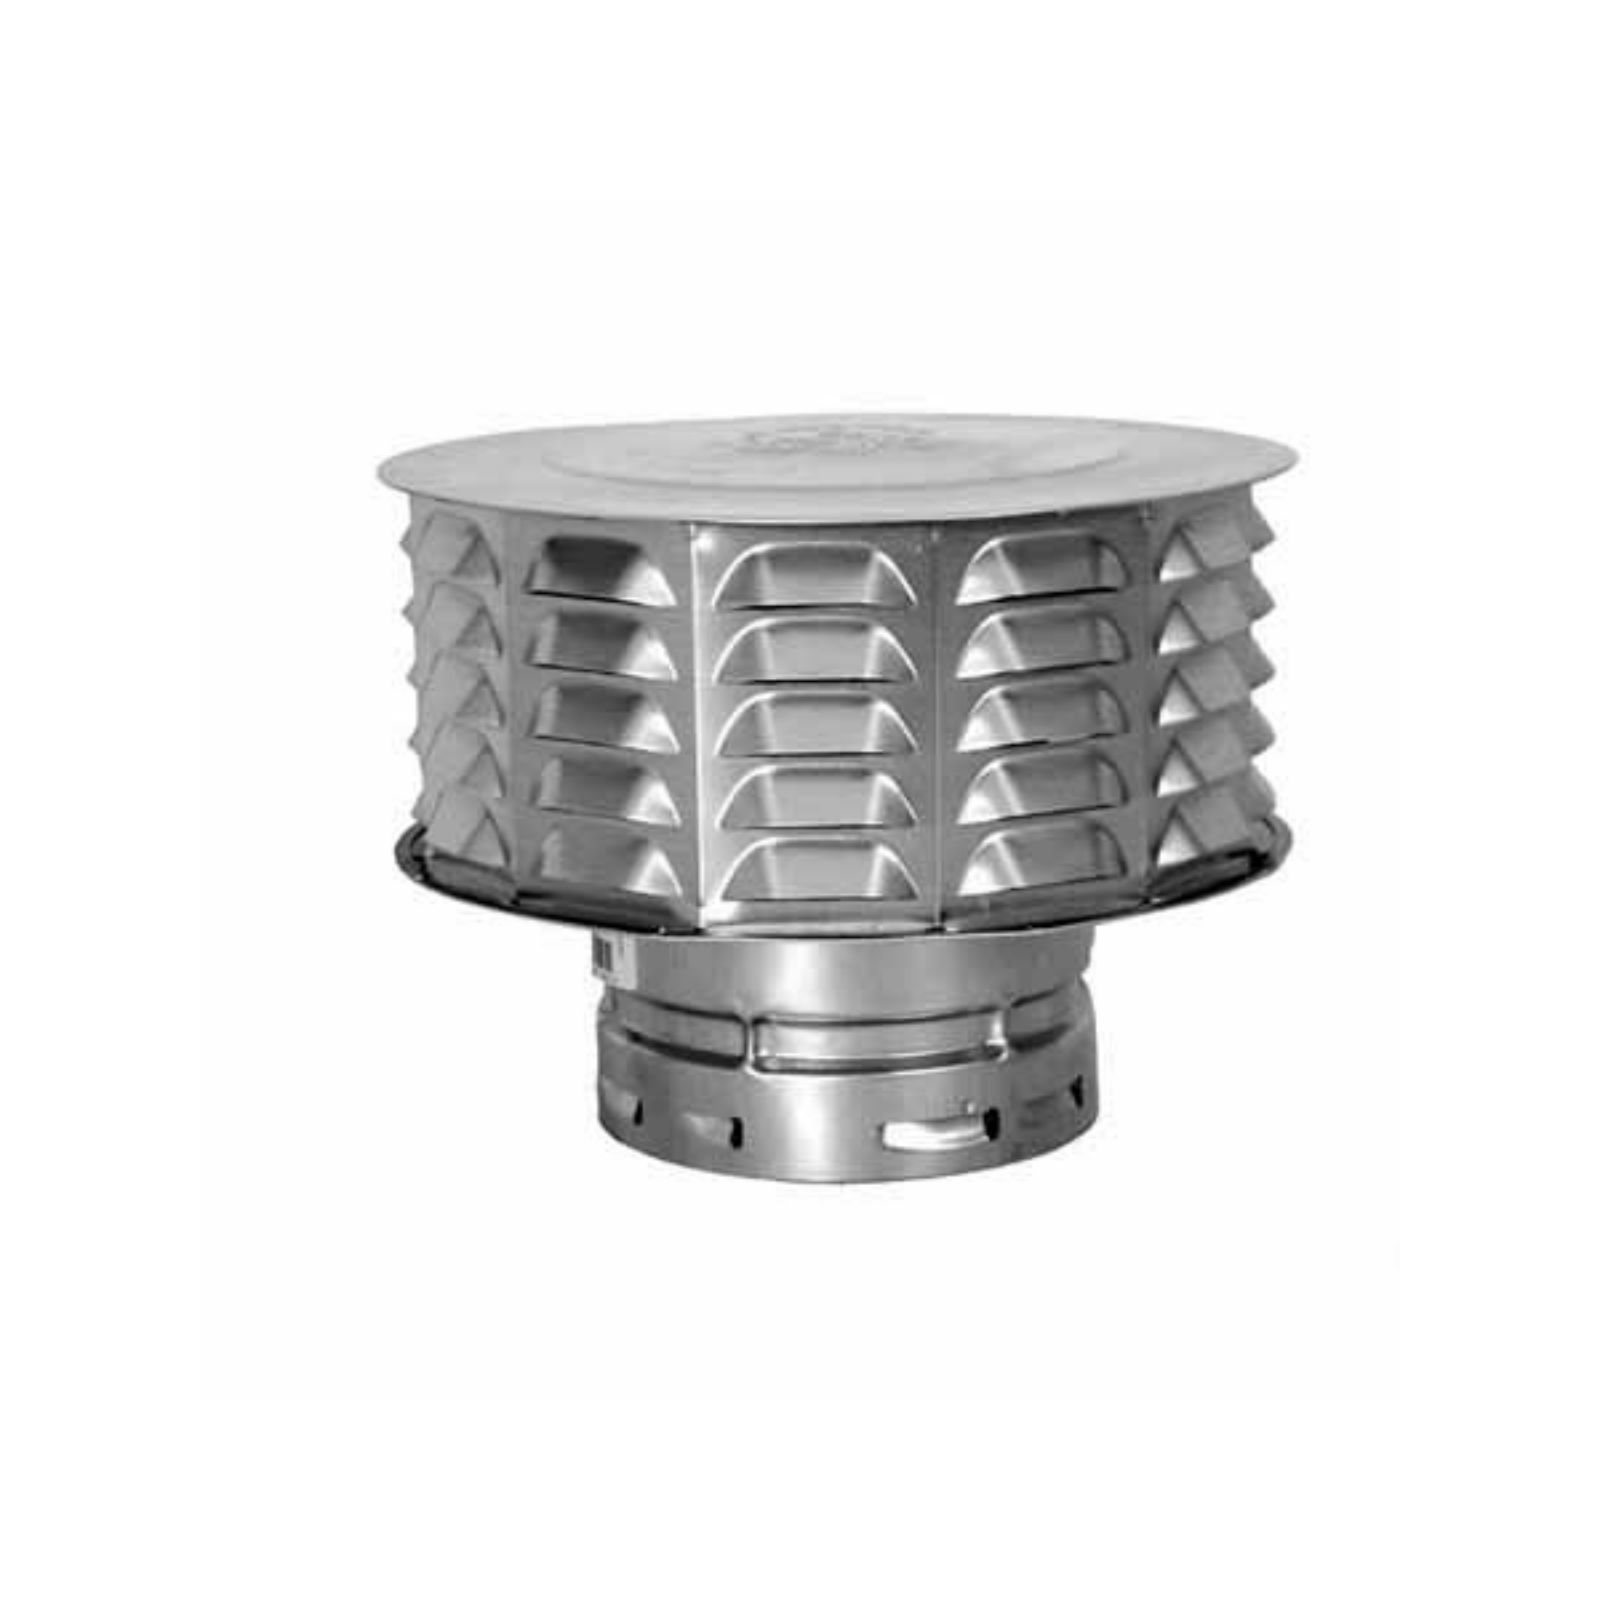 "AmeriVent 6ECW - Snap-lock Cap 6"", Locking, Louvered"